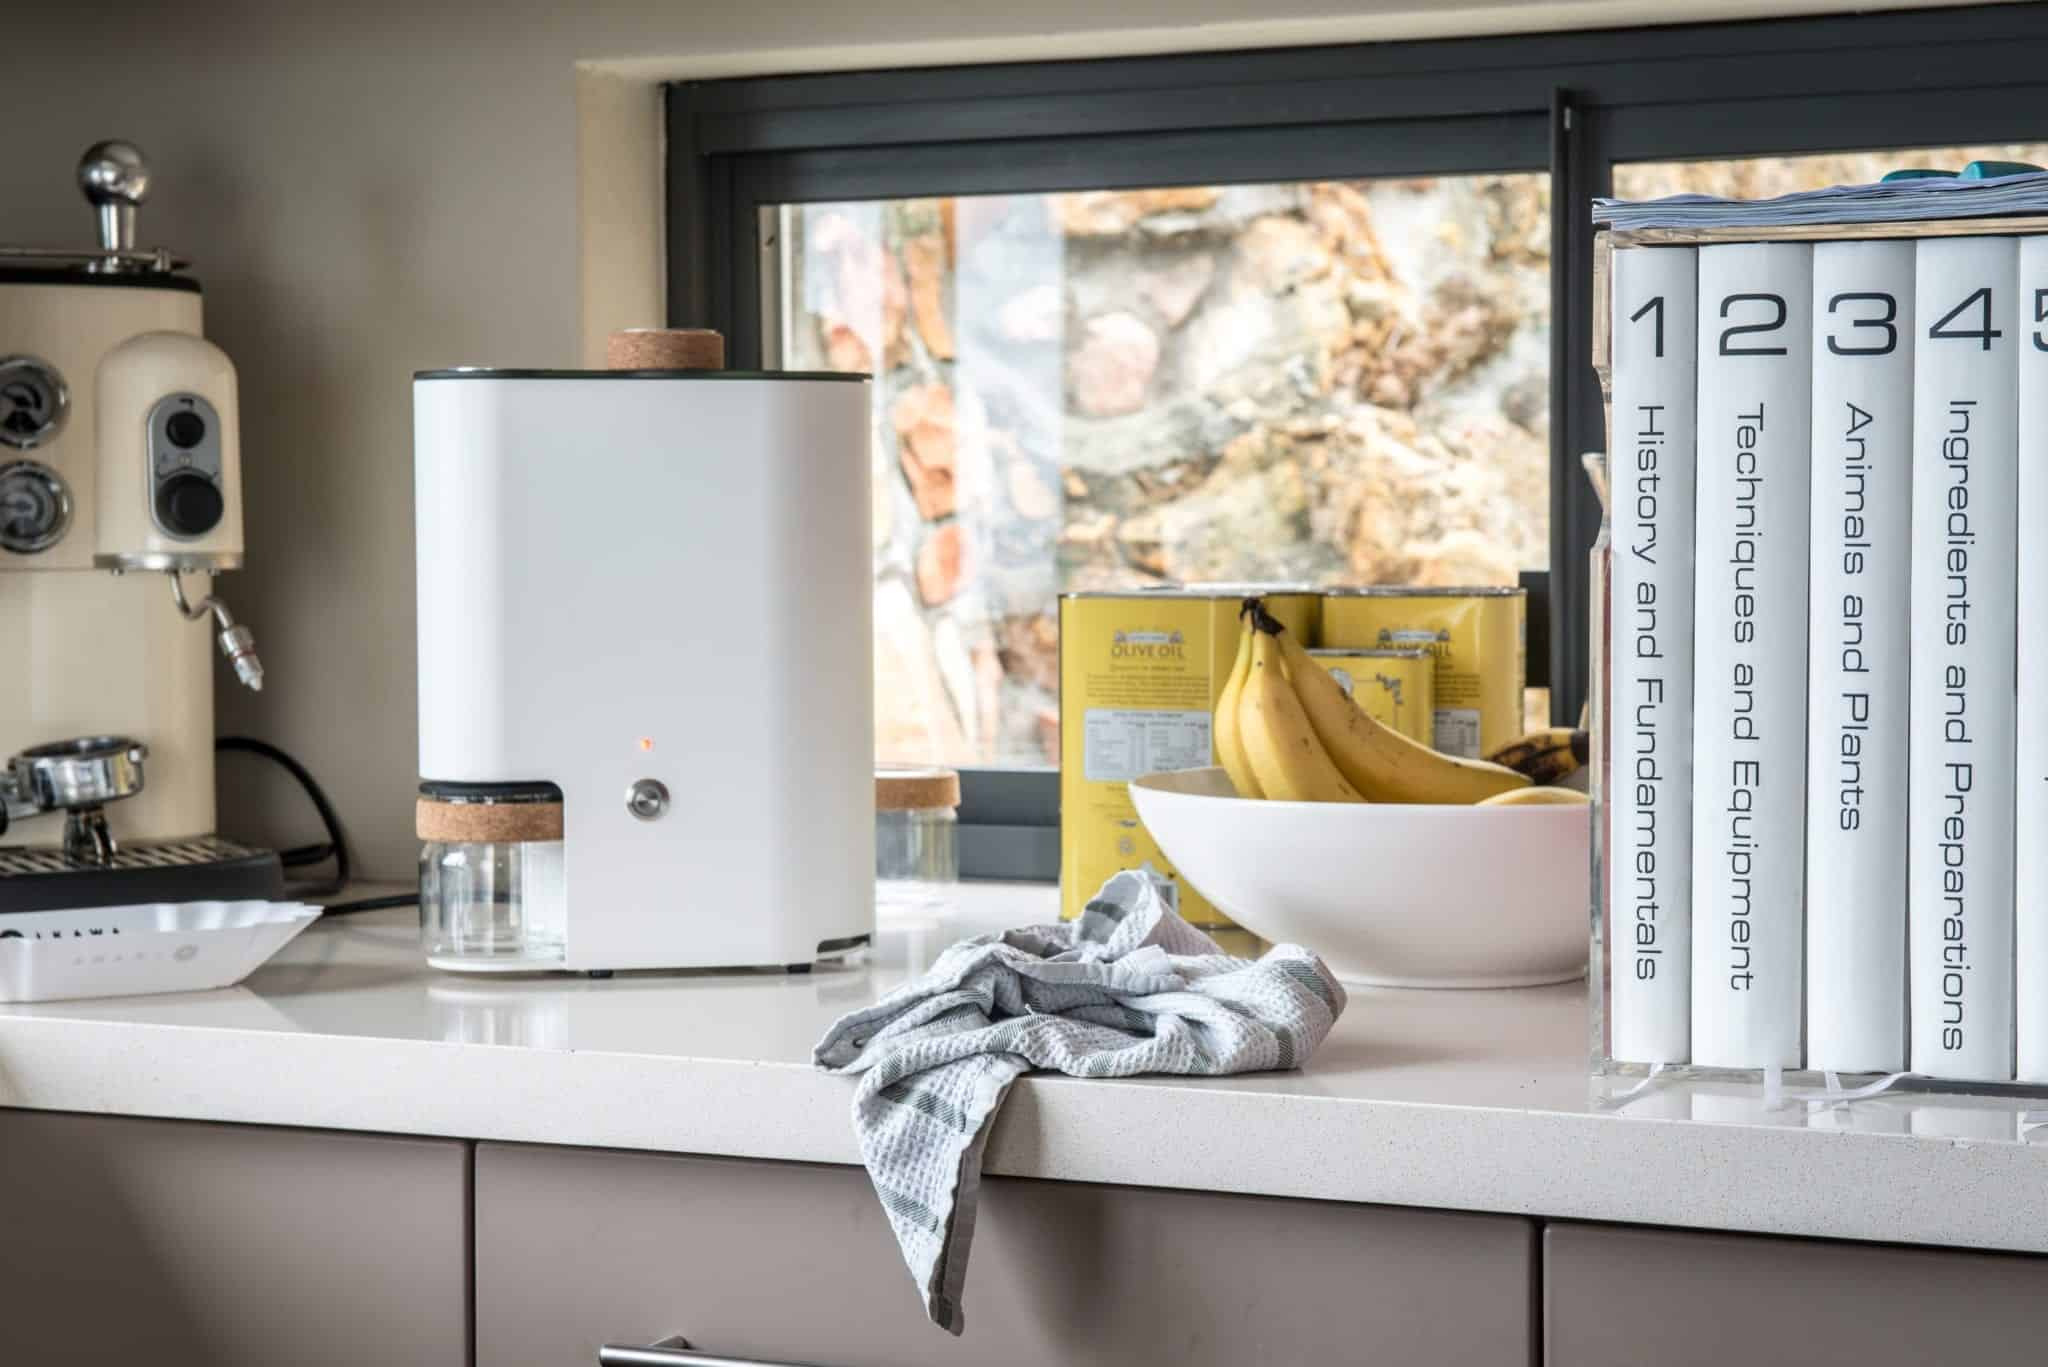 IKAWA Smart Home Coffee Roaster System kitchen side image with bananas